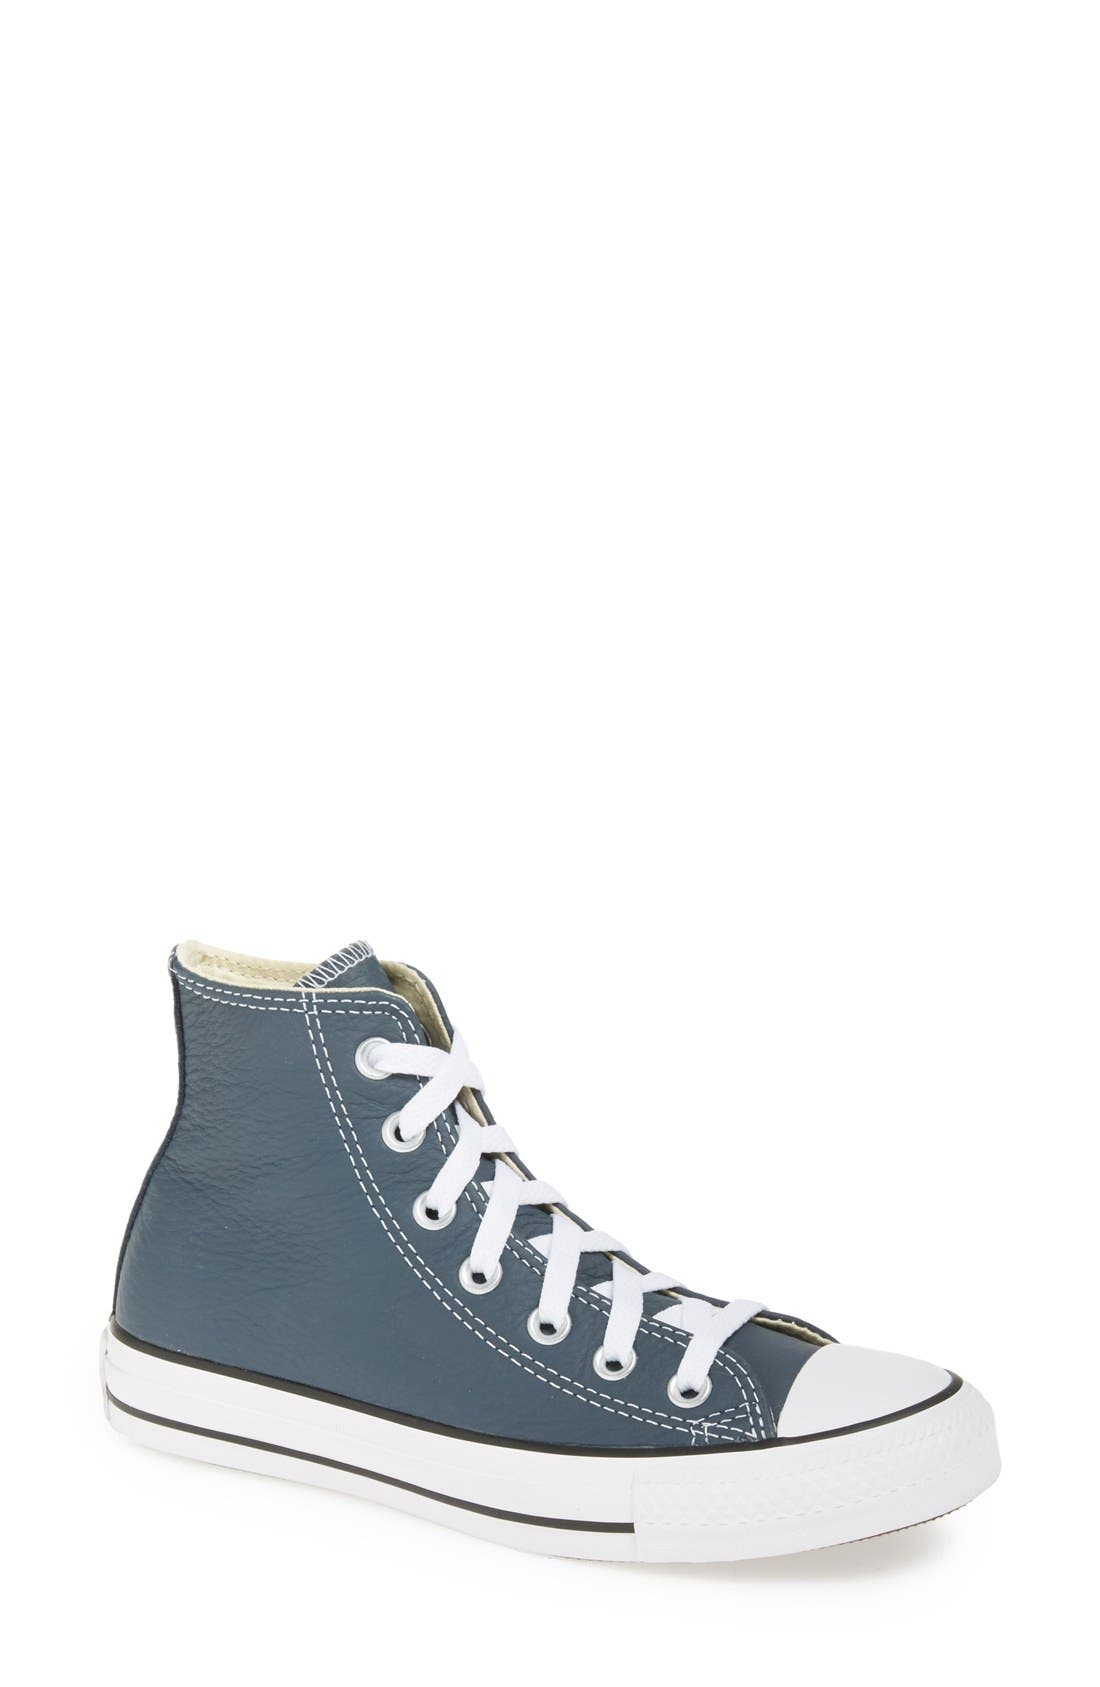 Main Image - Converse Chuck Taylor® All Star® High Top Leather Sneaker (Women)